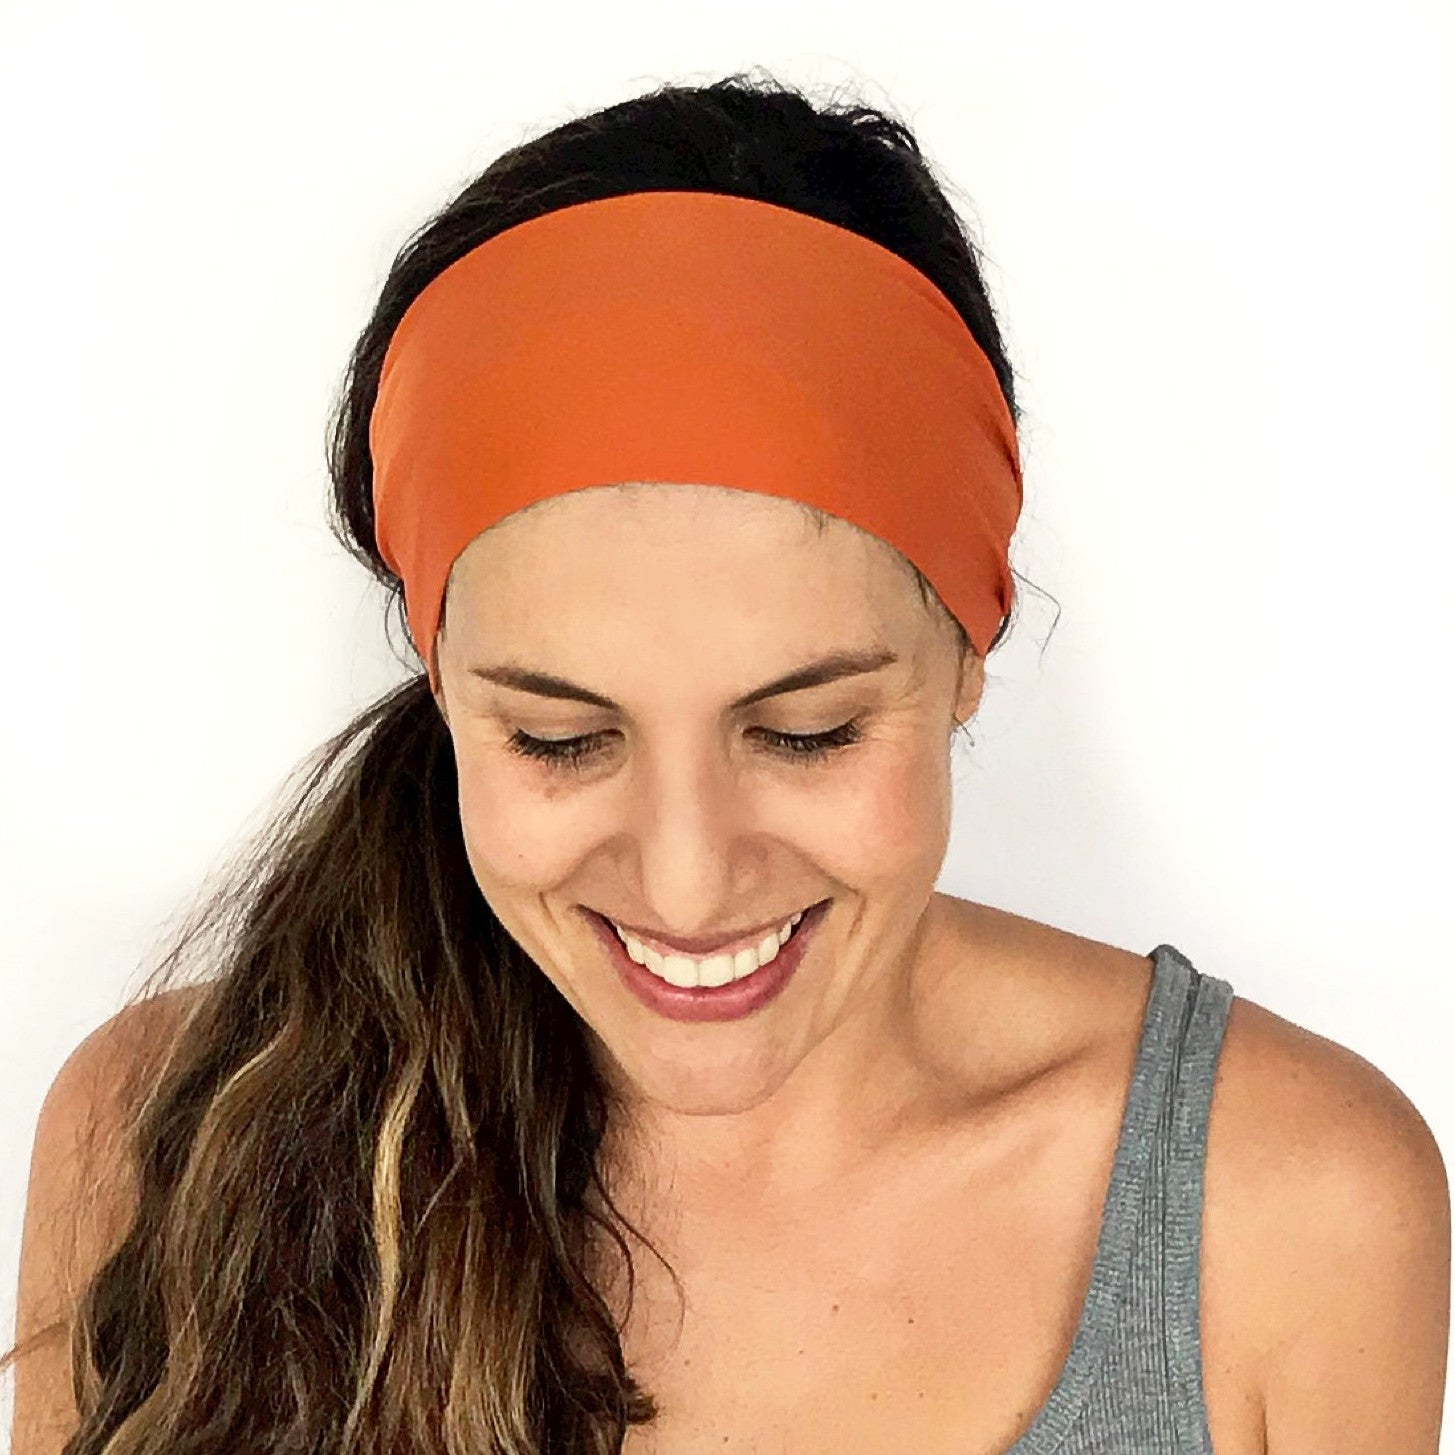 Turmeric Workout Headband